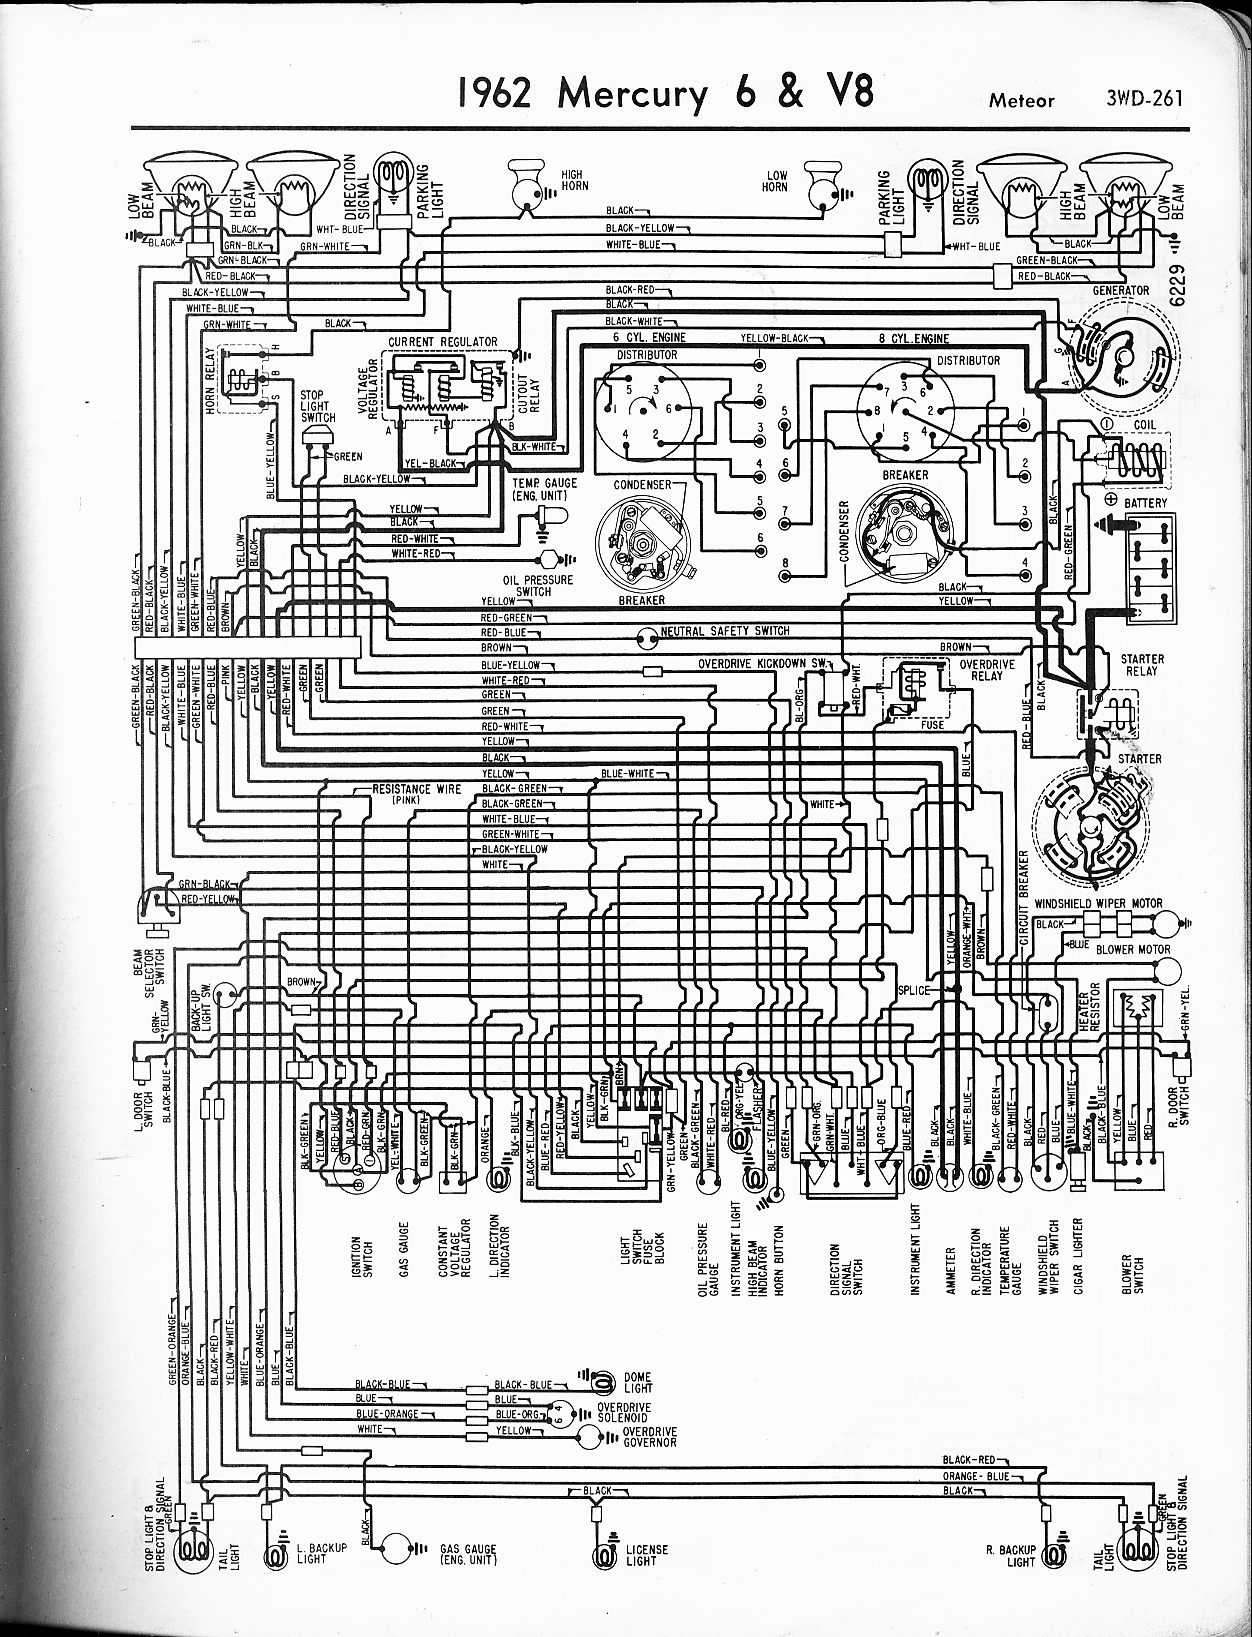 1964 Mercury Comet Horn Button Wiring Archive Of Automotive York Diagrams Furnace N2ahd2oao6c The Old Car Manual Project Rh Oldcarmanualproject Com